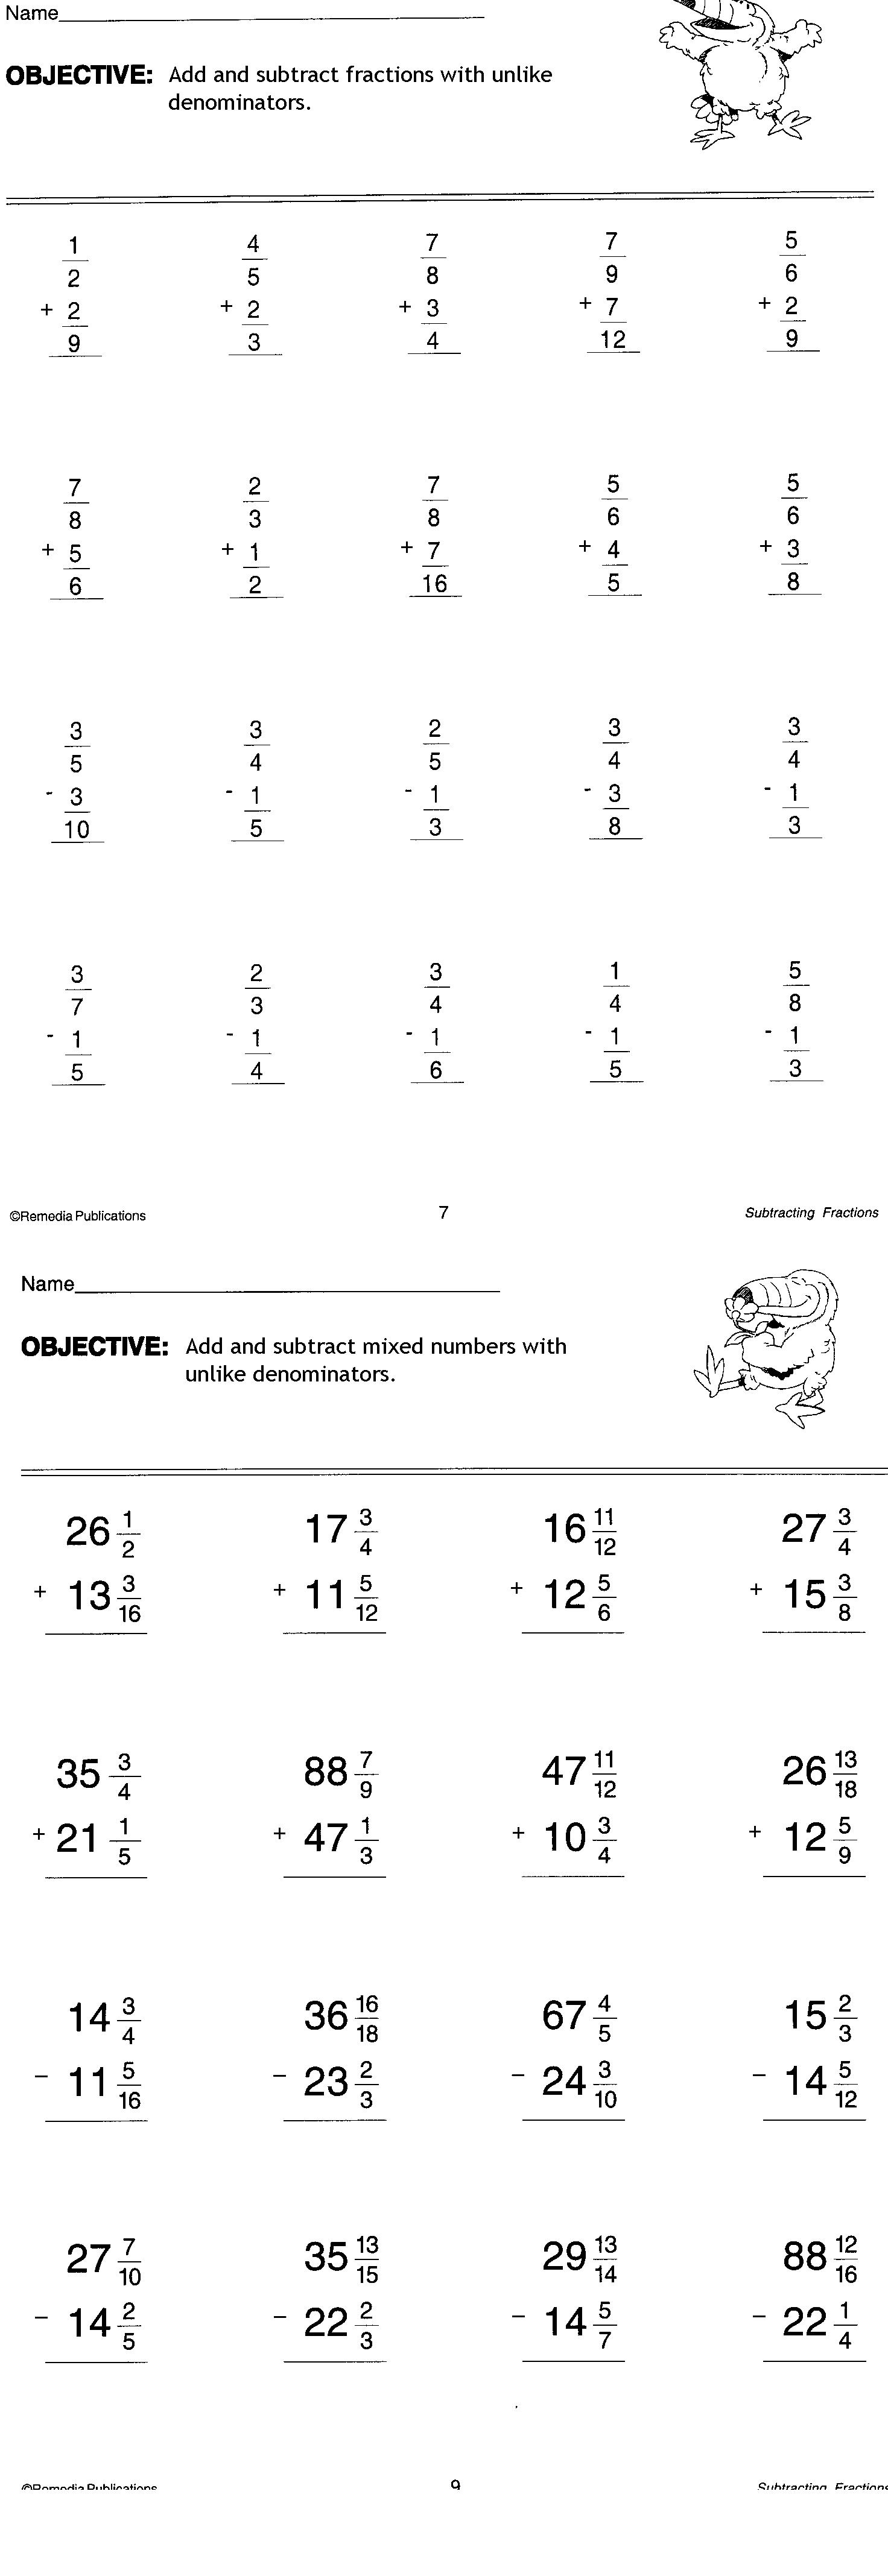 Worksheet Unit Rates Worksheet 7th Grade 2nd hour math mr tats zone 2 sided worksheet on adding and subtracting unlike fractions